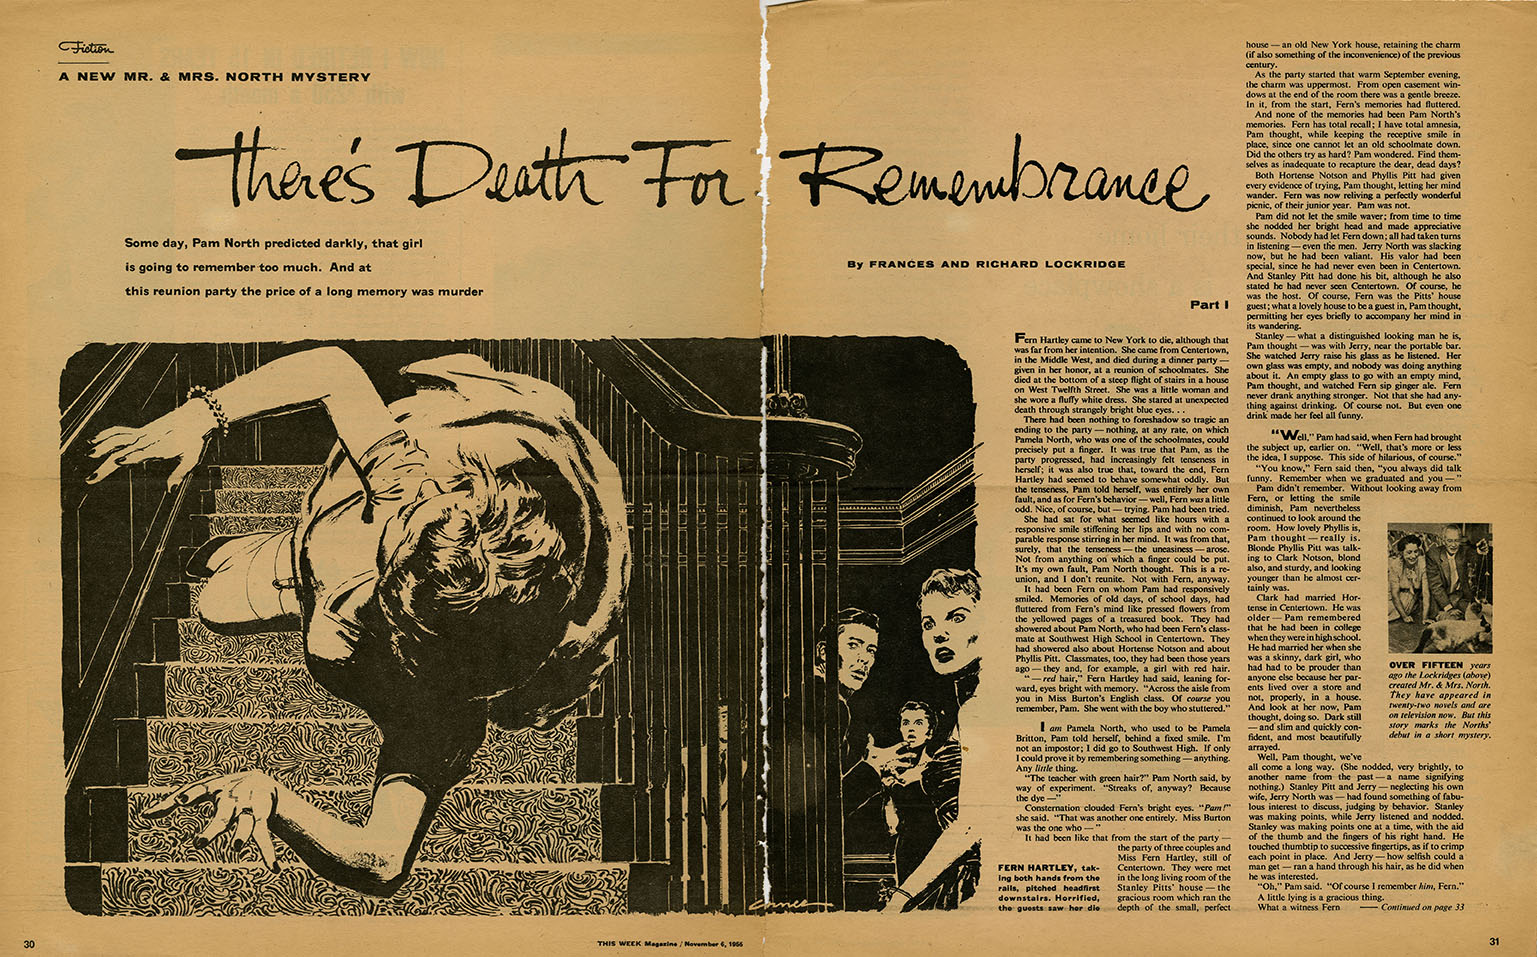 """Tear sheet, This Week Magazine , November 13, 1953. From the Mac Conner tear sheet file in the Walt Reed Illustration Archive, housed in the  Modern Graphic History Library  at Washington University.   FROM THE LABEL COPY for the color version, above :Florence and Richard Lockridge's noir tale """"There's Death for Remembrance"""" typifies the assignments Mac received from  This Week . This two-part story centers on the murder of Fern Hartley, shown here in mid-air, falling down a flight of stairs to her death. Hartley had been attending a dinner party and reunion of high school friends when her incessant reminiscing provoked someone to silence her. The following week Conner's illustration shows dinner guests looking down at Fern's lifeless body.   This Week Magazine  was a syndicated free newspaper supplement inserted into local Sunday newspapers. Published from 1935-1969, at  This Week's  height it appeared in 42 papers nationwide. As many as 13 million people may have seen this image in print, dwarfing the audience for Conner's magazine work. It's appropriate that his biggest audience would see such a representative work–featuring the trademark Conner inventive point-of-view."""